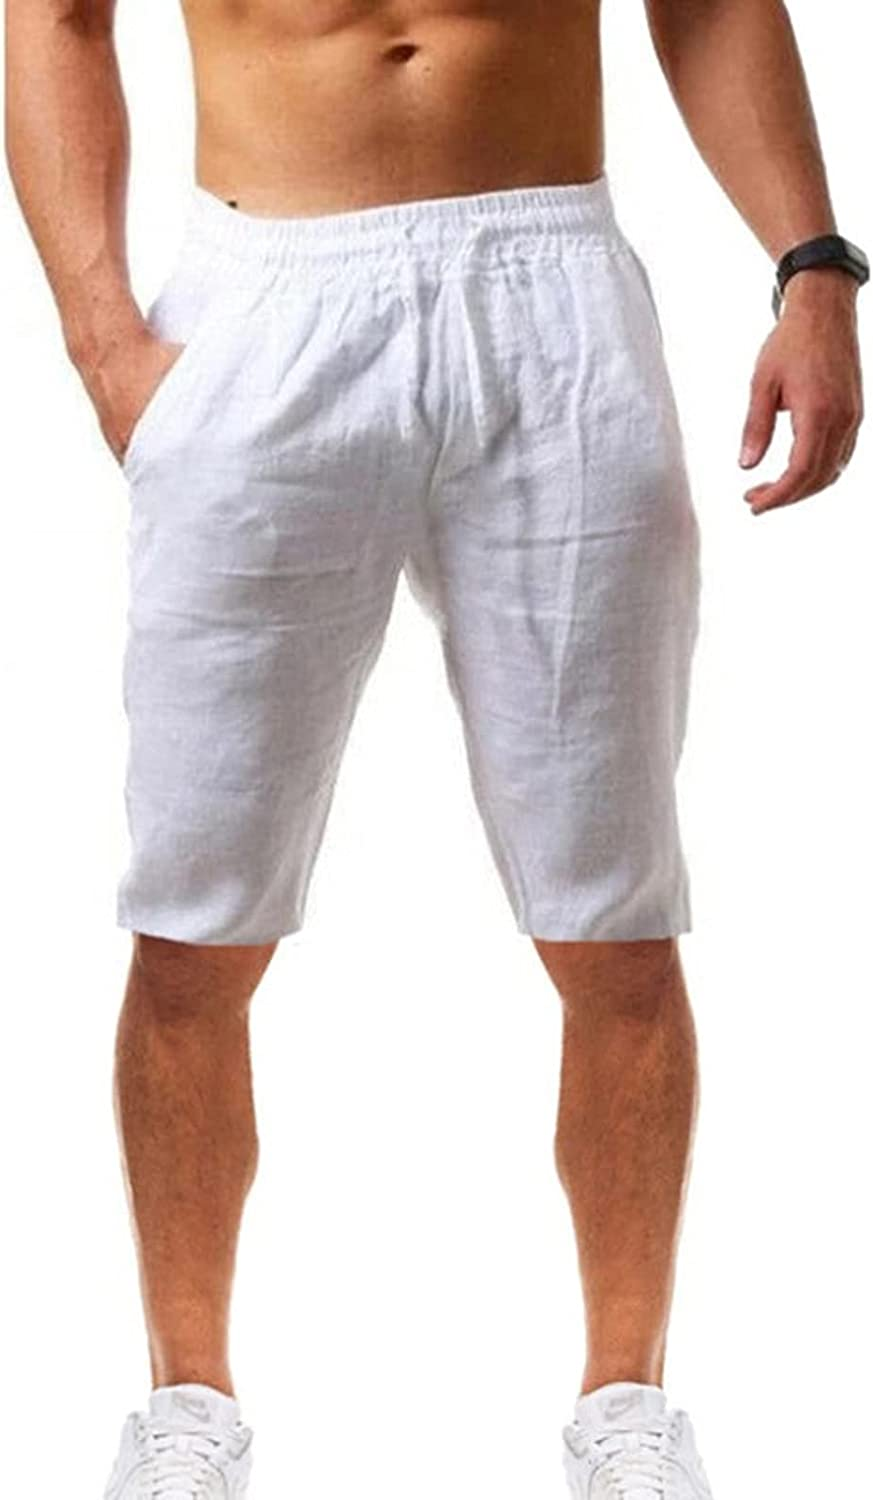 Men's Linen Casual Shorts 7 inch Inseam Stretch Classic Fit Summer Beach Shorts with Drawstring and Pockets